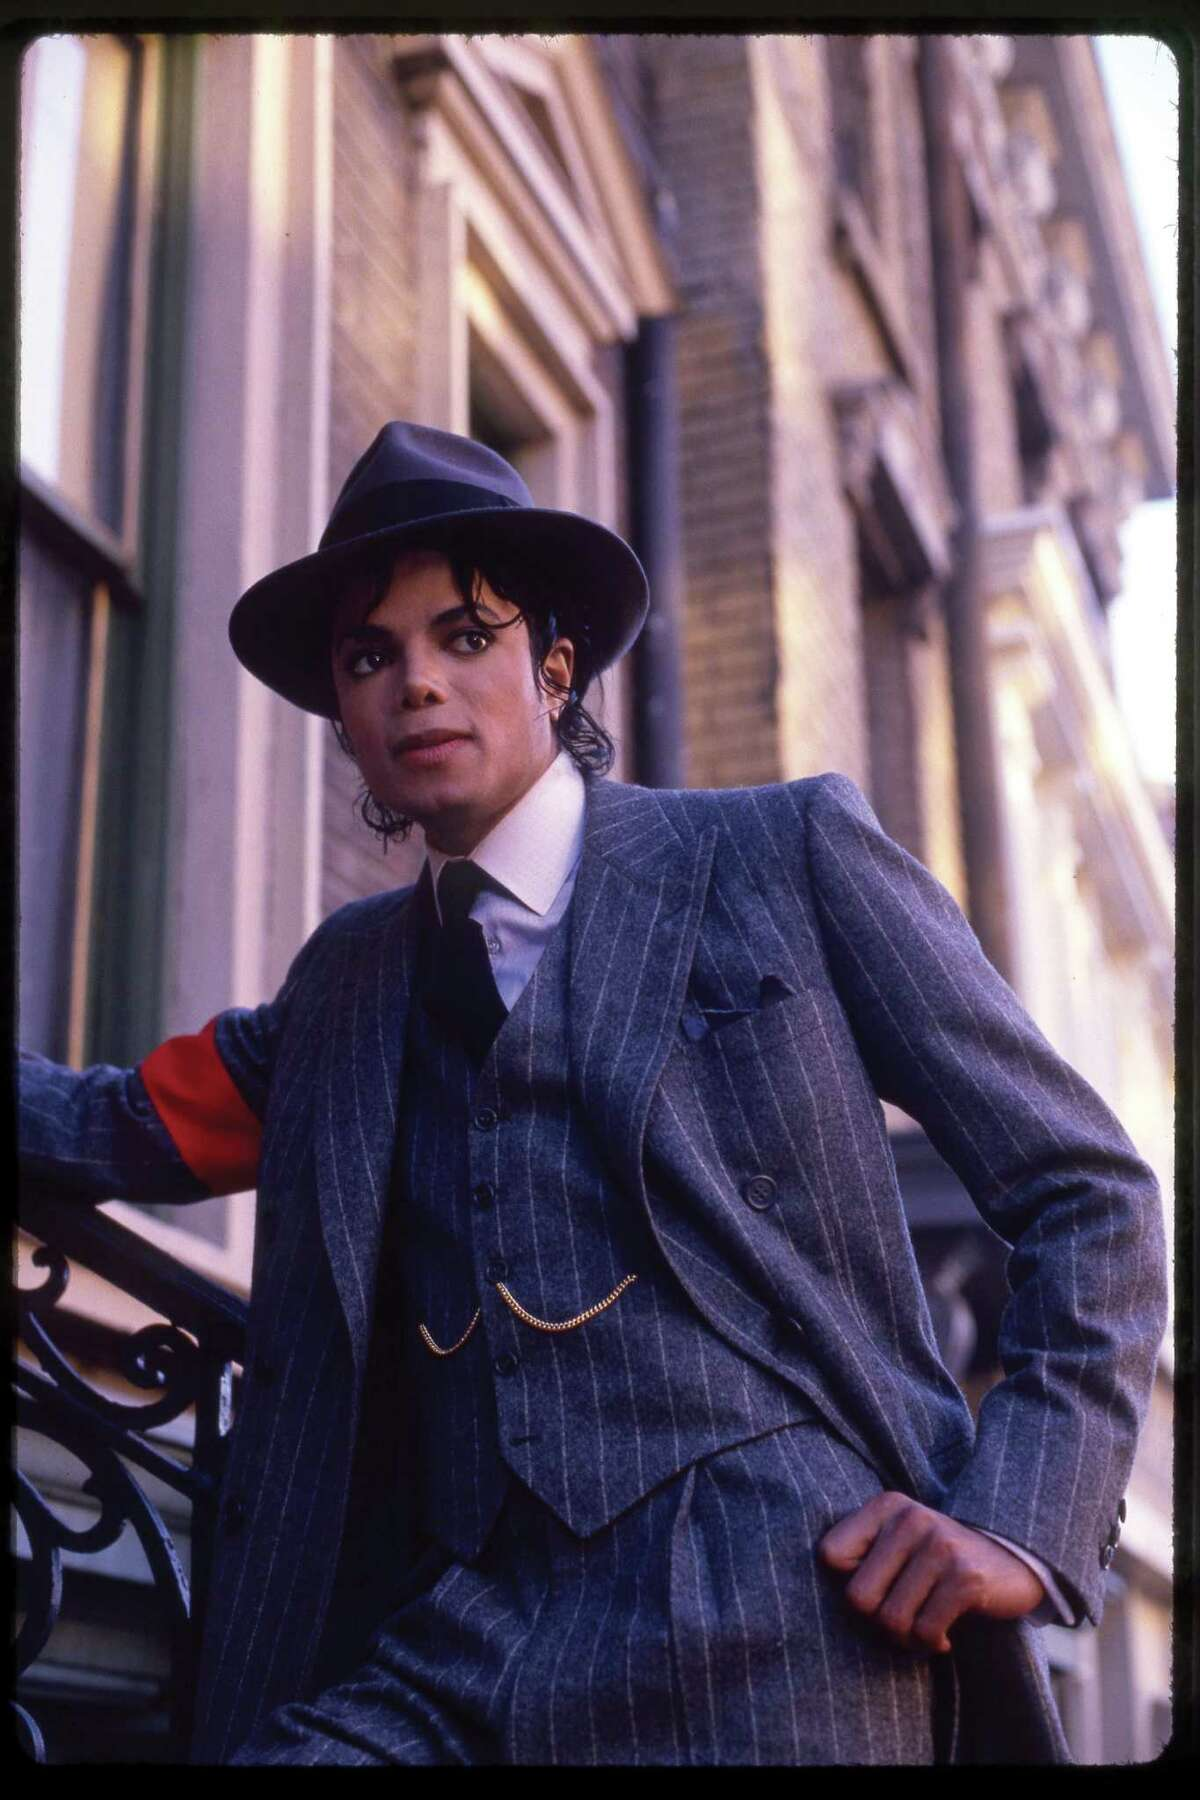 """The original Michael Jackson """"Bad """"album has sold between 30 to 45 million copies worldwide, shipped 8 million units in the United States alone, and has been cited as the fifth best selling album of all time. The album produced five Hot 100 number ones, the first album to do so. Courtesy photo"""